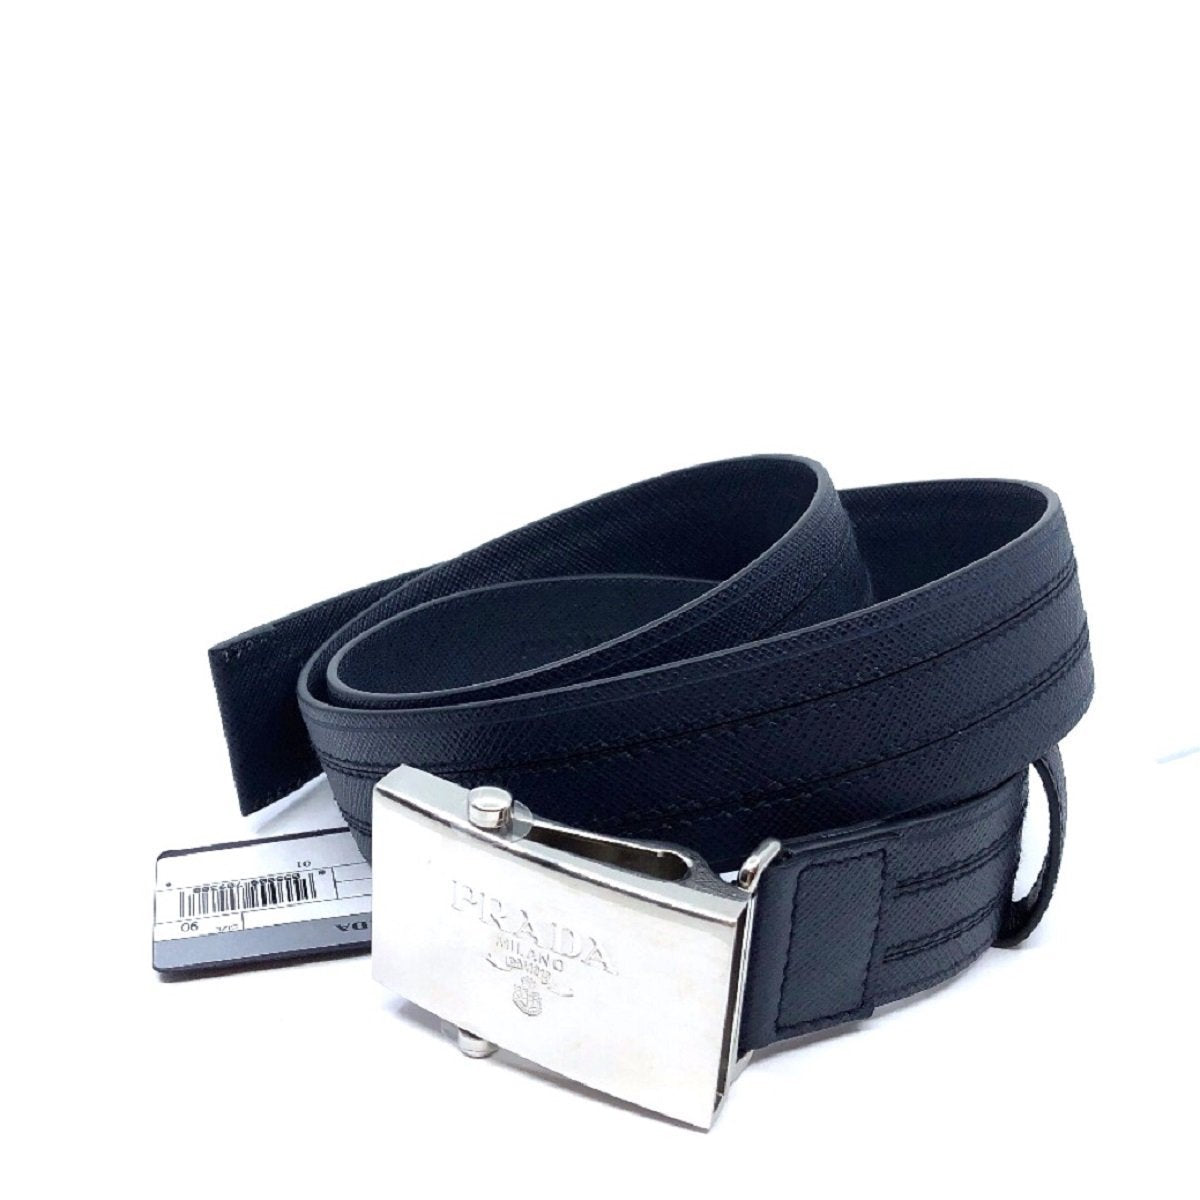 Prada Men's Logo Engraved Plaque Saffiano Leather Belt Blue 36 90 2CM009